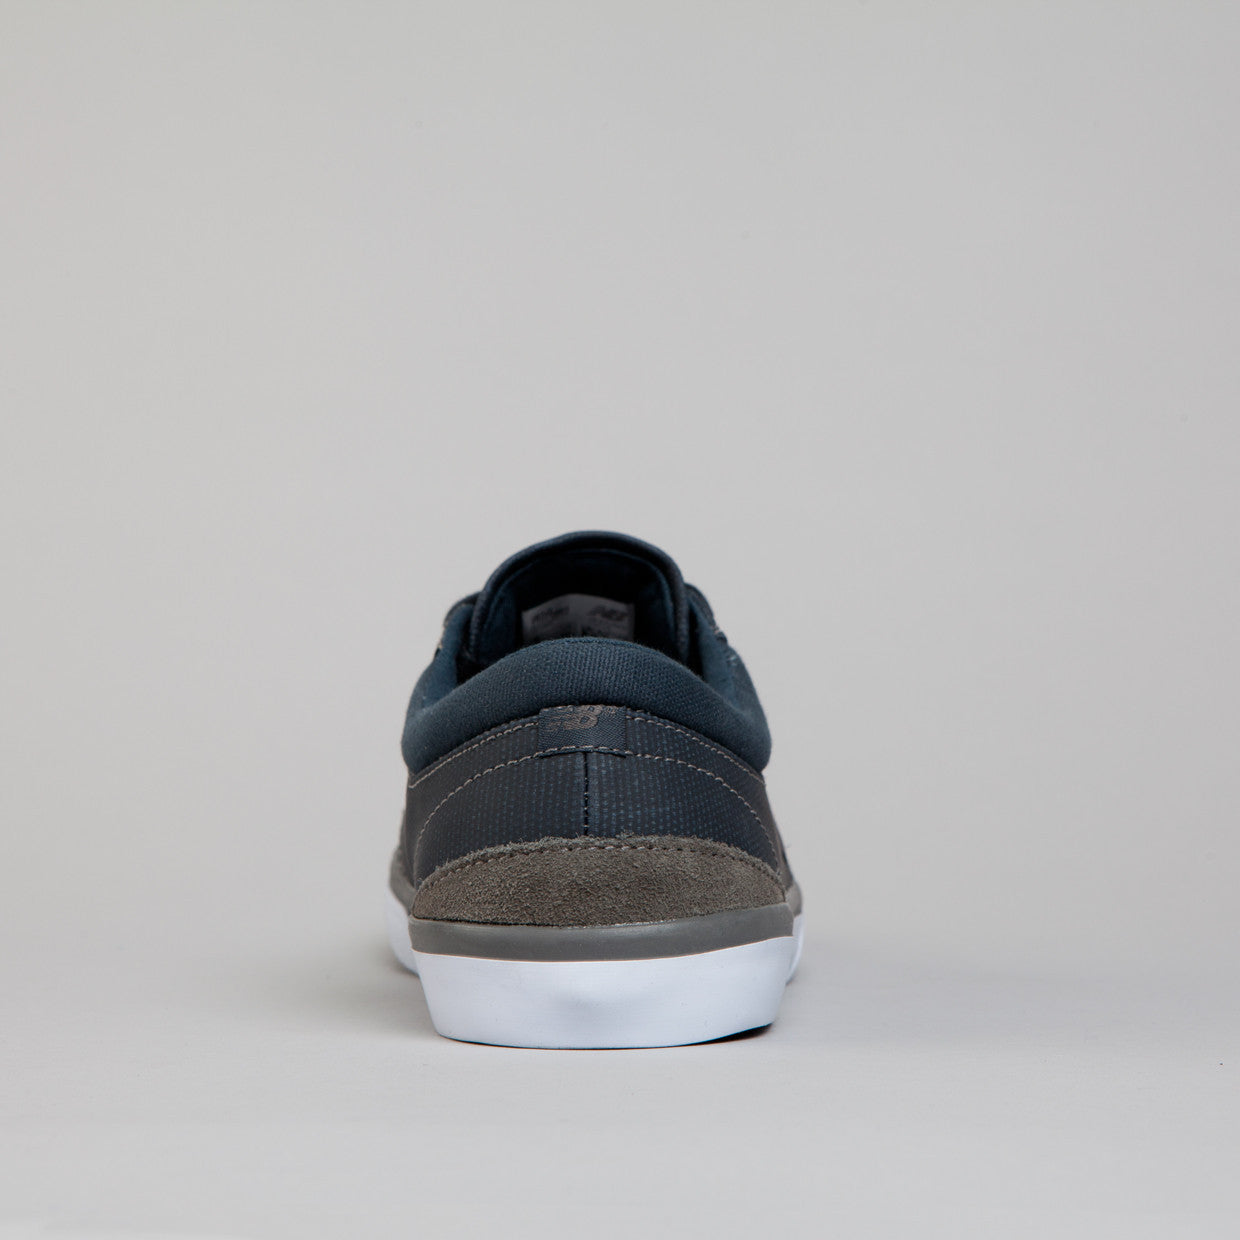 New Balance Numeric Brighton 344 Shoes - Indigo Blue / Asphalt Grey